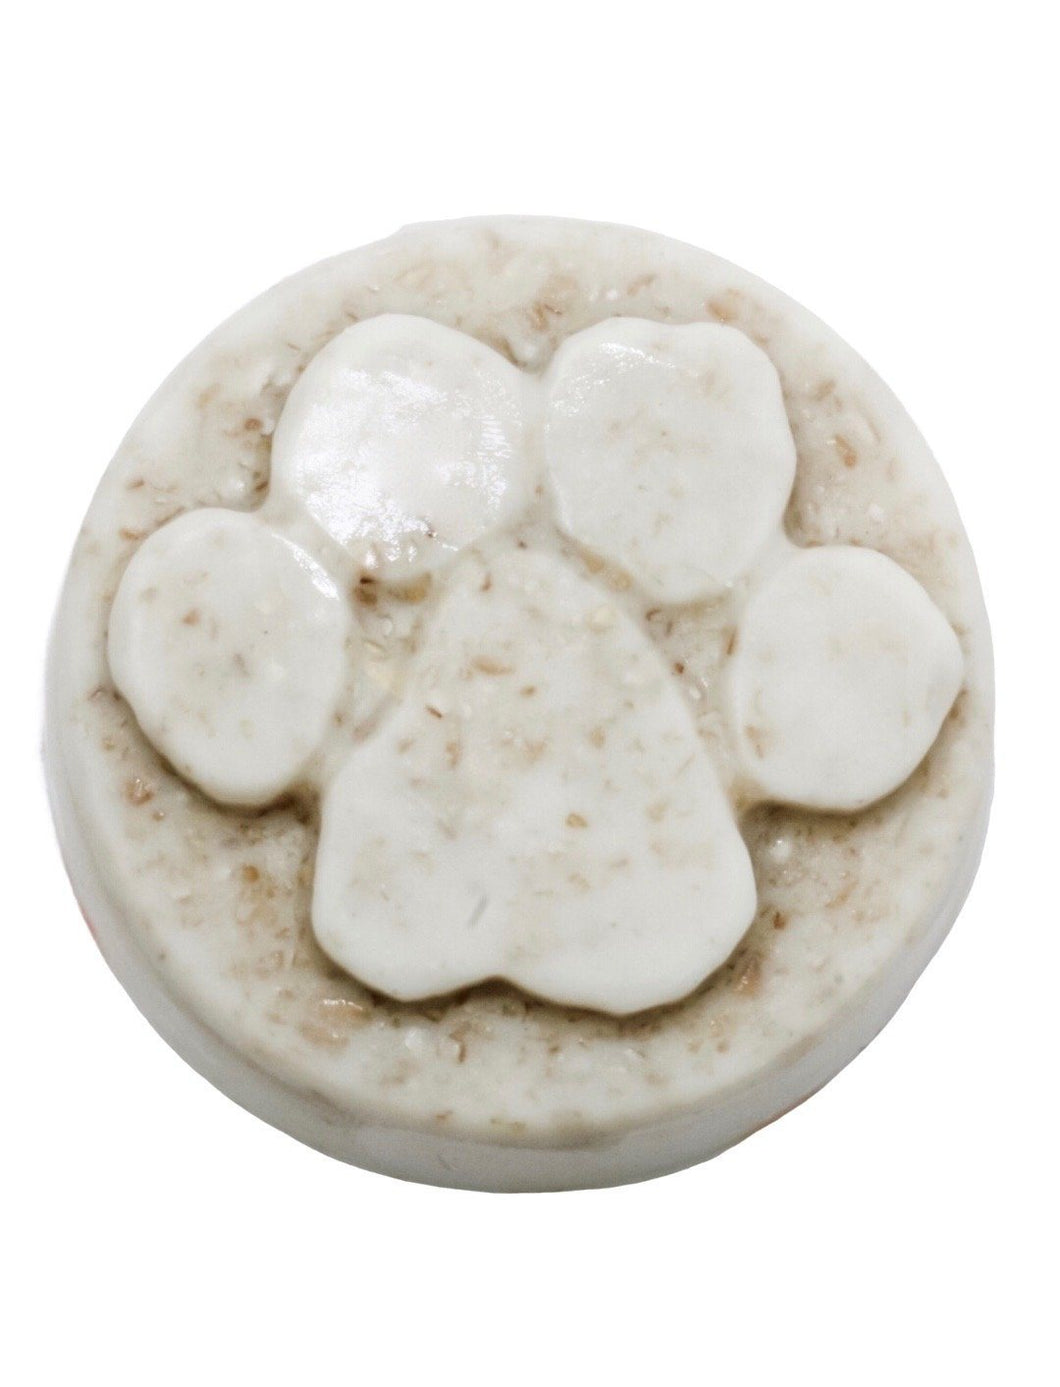 Dog Shampoo Bar - Skin Soothing Oatmeal Root Natural Soap